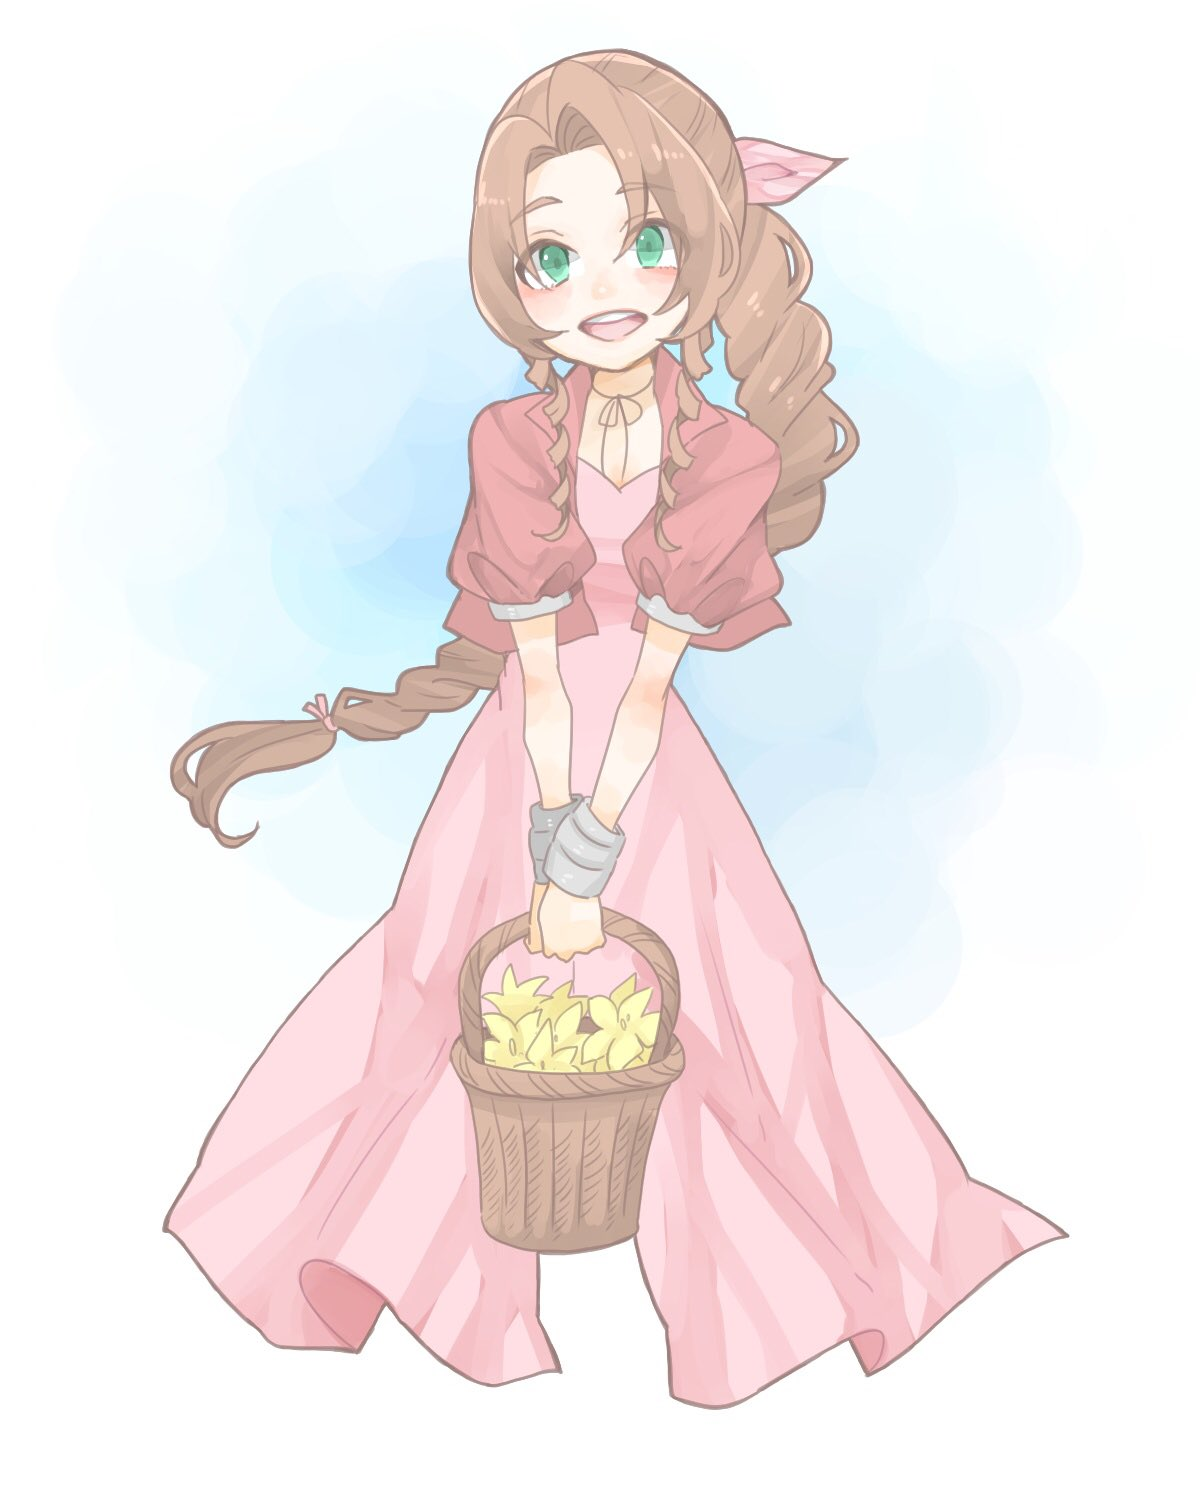 1girl :d aerith_gainsborough aqua_eyes basket brown_hair cropped_jacket dress eyebrows_visible_through_hair eyes_visible_through_hair final_fantasy final_fantasy_vii flower hair_intakes hair_ribbon highres holding holding_basket jacket long_hair looking_at_viewer open_clothes open_jacket open_mouth pink_dress pink_ribbon puffy_short_sleeves puffy_sleeves red_jacket ribbon short_sleeves smile solo teeth toufu_(toufu_53) v_arms yellow_flower